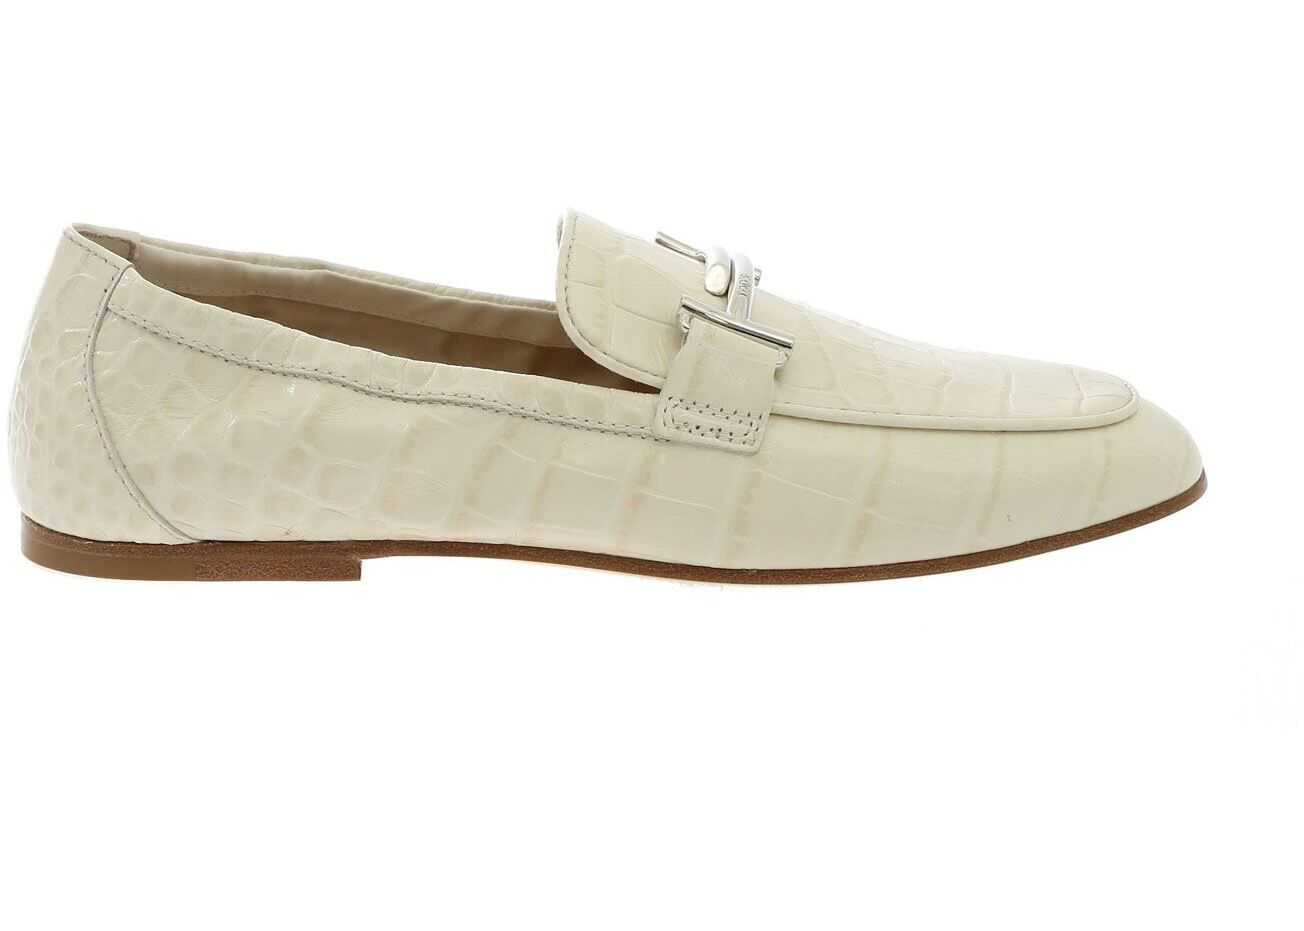 TOD'S Croco-Printed Loafers In White White